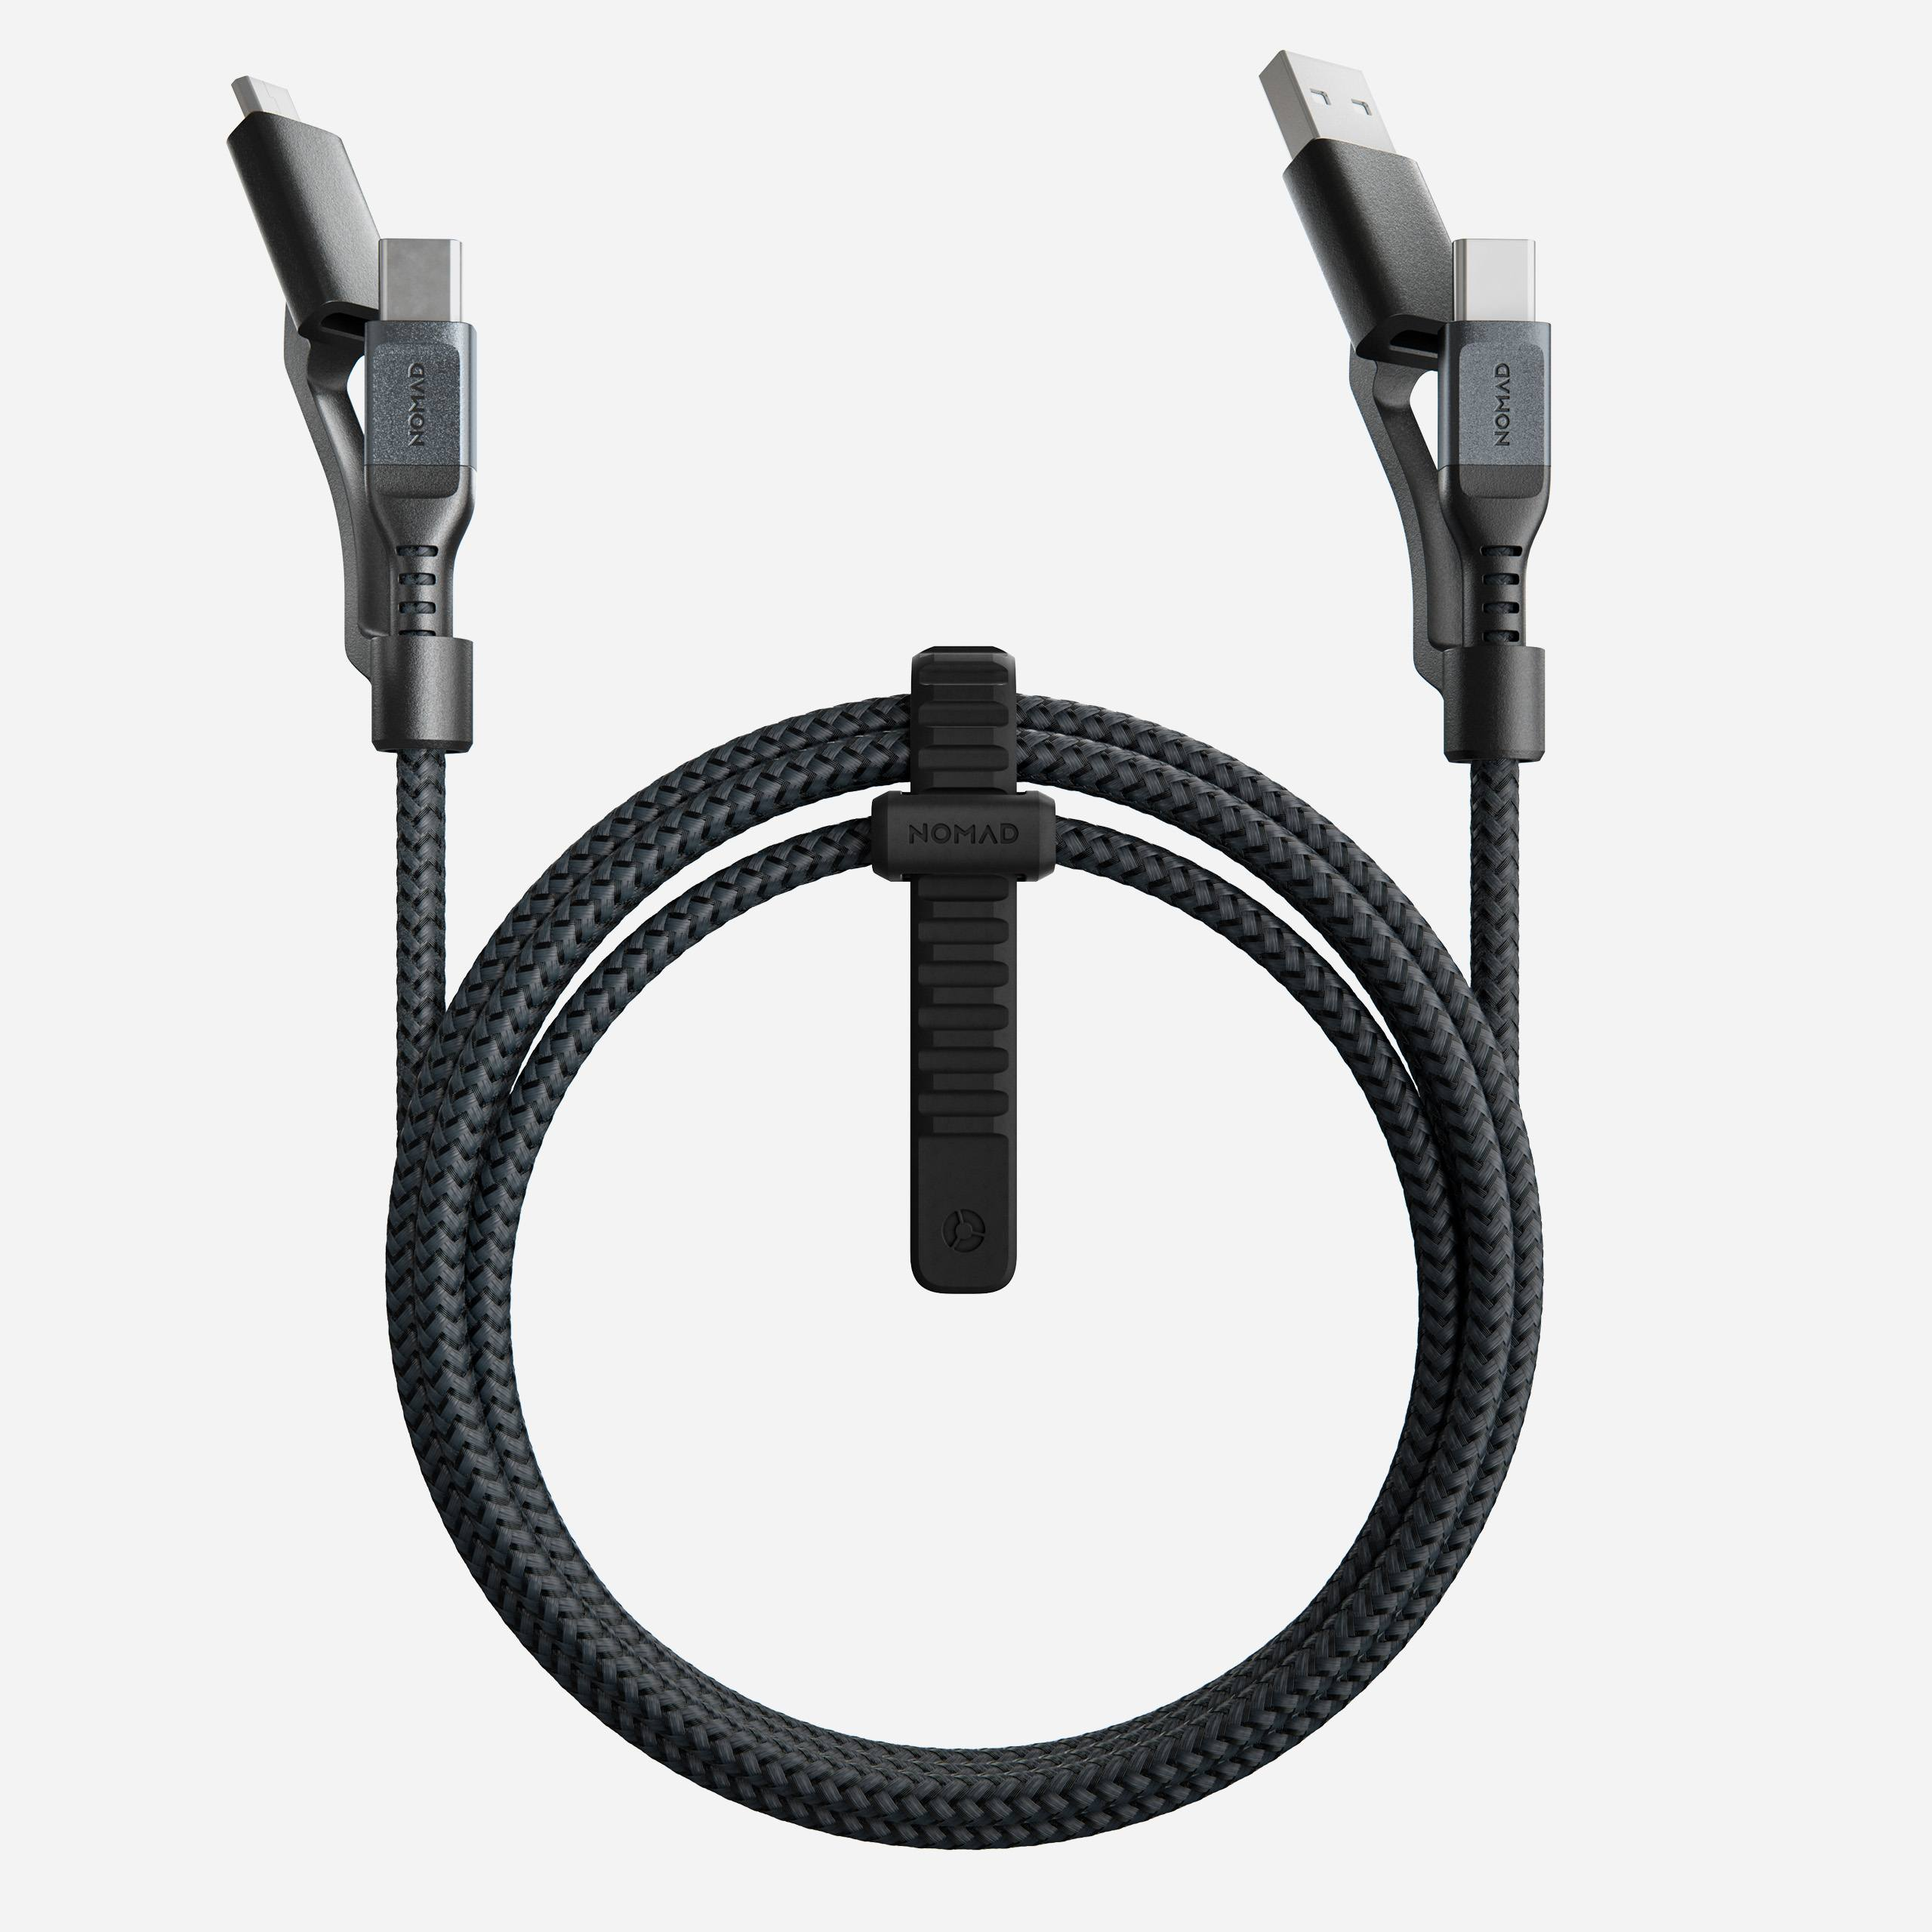 Universal Cable USB-C 1.5m Side View